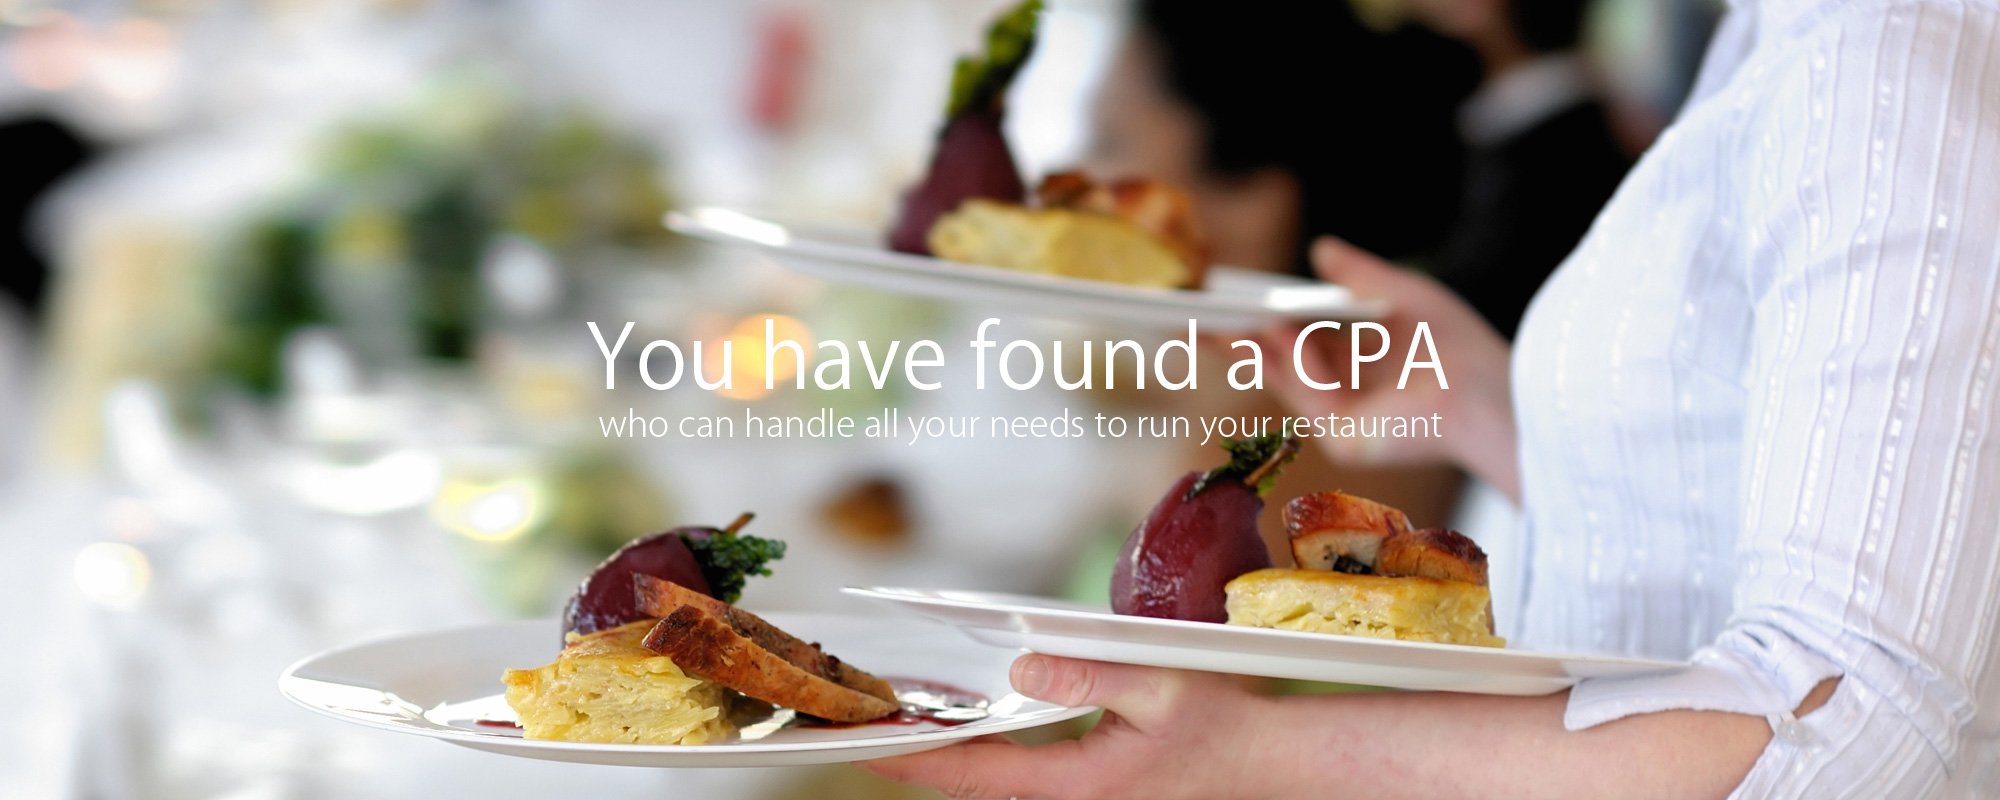 Restaurant CPA - Restaurant Accountung and Bookeeping